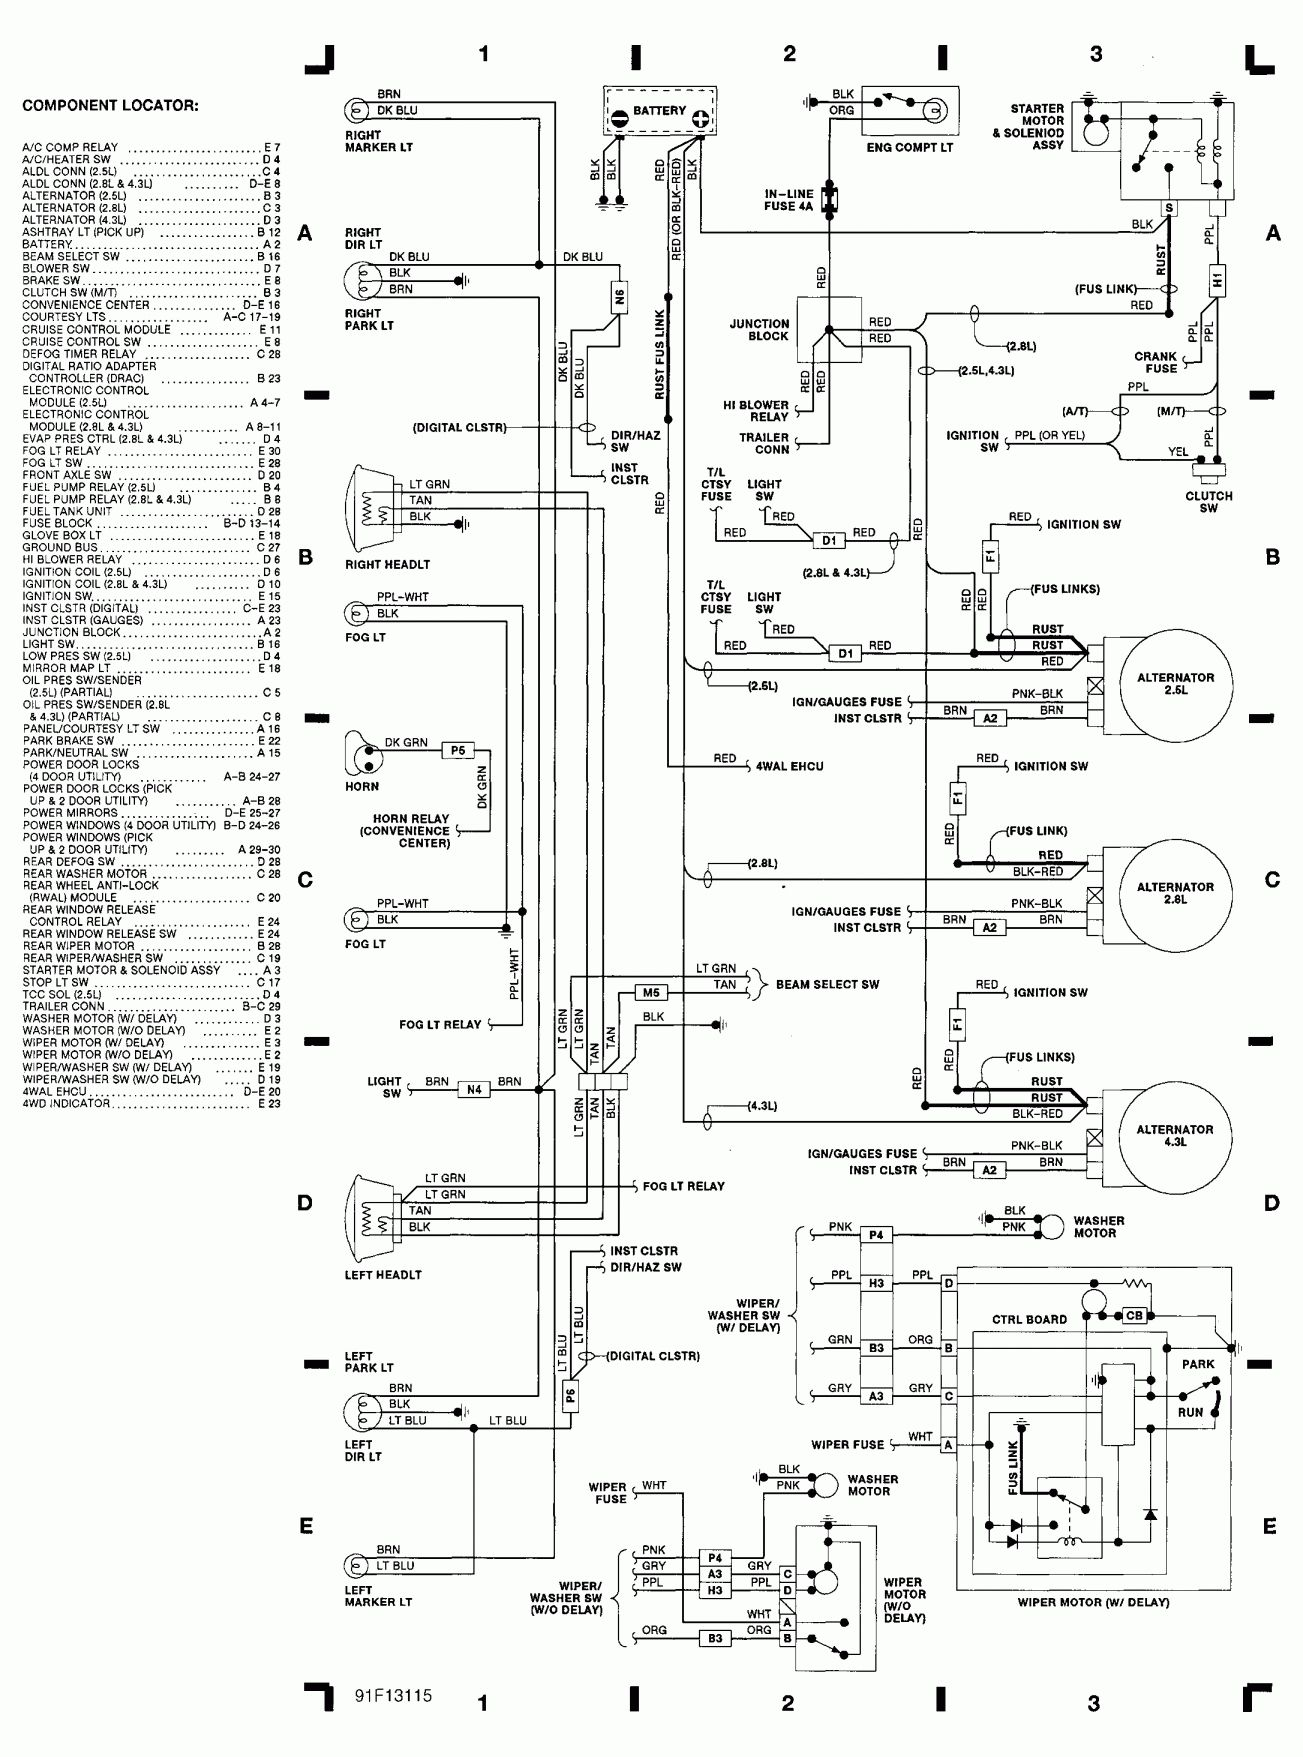 diagram] cascade truck camper wiring diagram 1991 full version hd quality diagram  1991 - sacwiring.laboratoire-herrlisheim.fr  diagram database - laboratoire-herrlisheim.fr